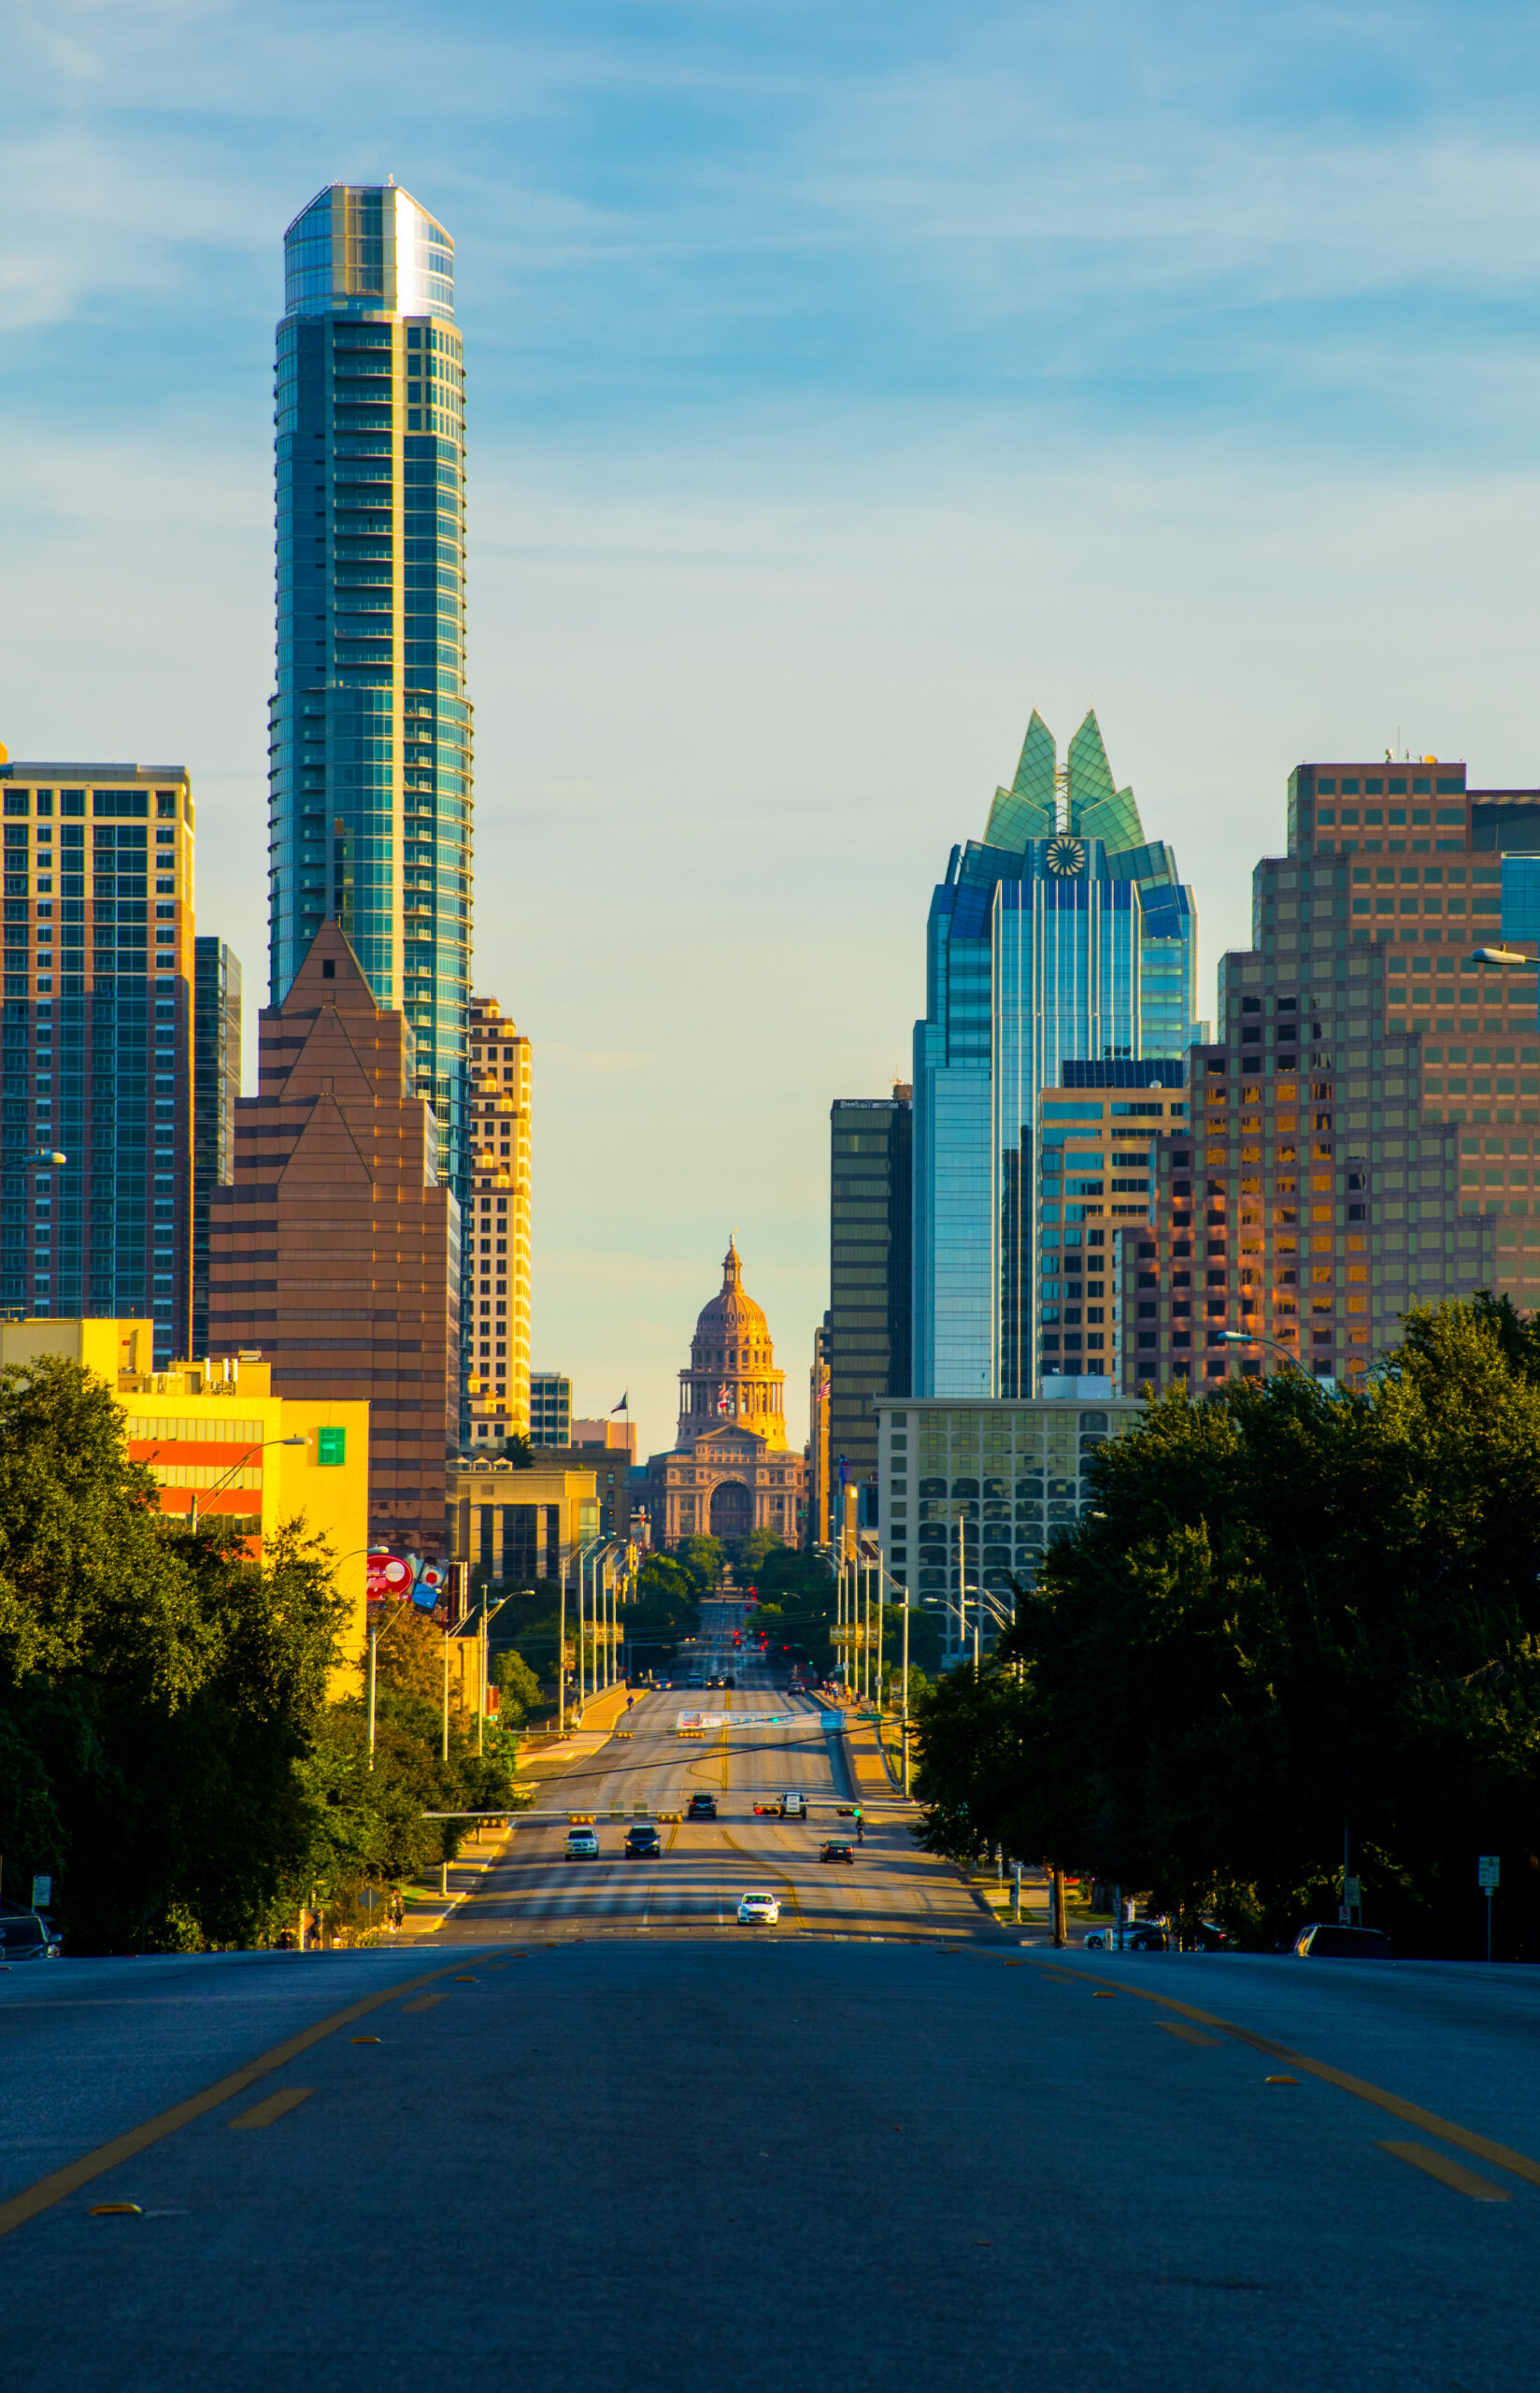 Testimony: Texas Pension Reform Effort Would Improve Retirement Security, Lower Costs